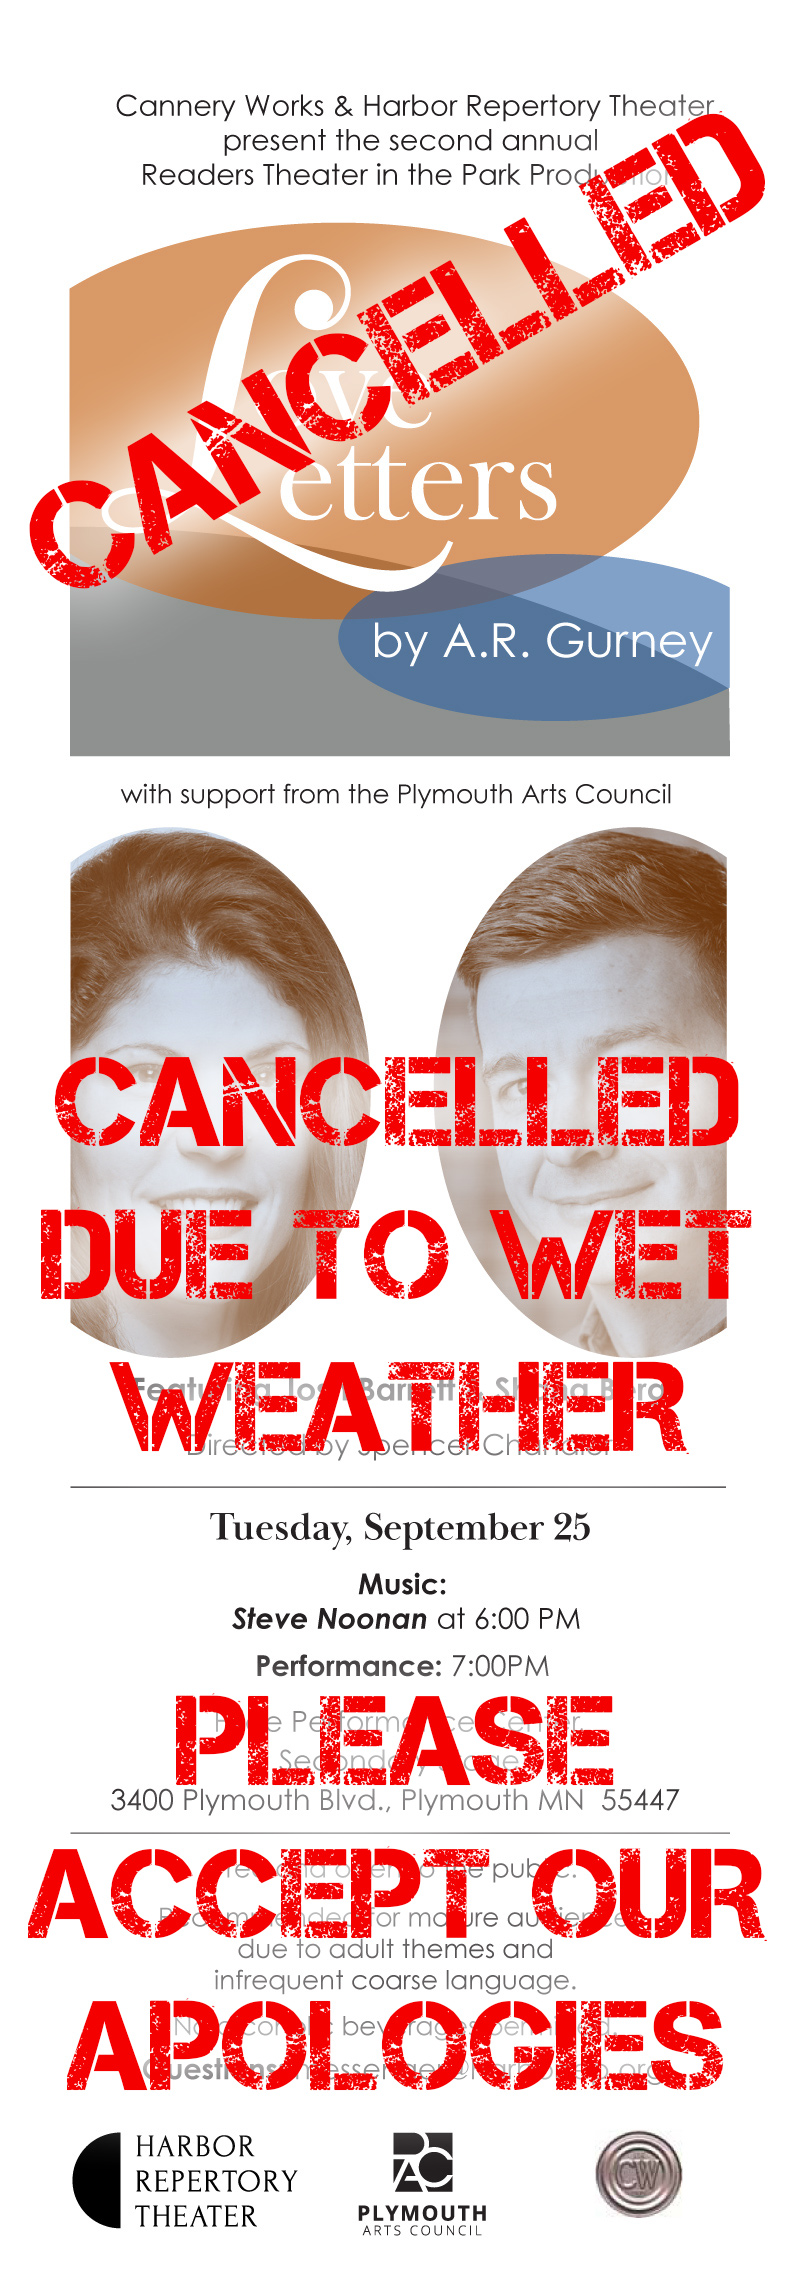 Poster_CANCELLED_2018-800x2293.jpg